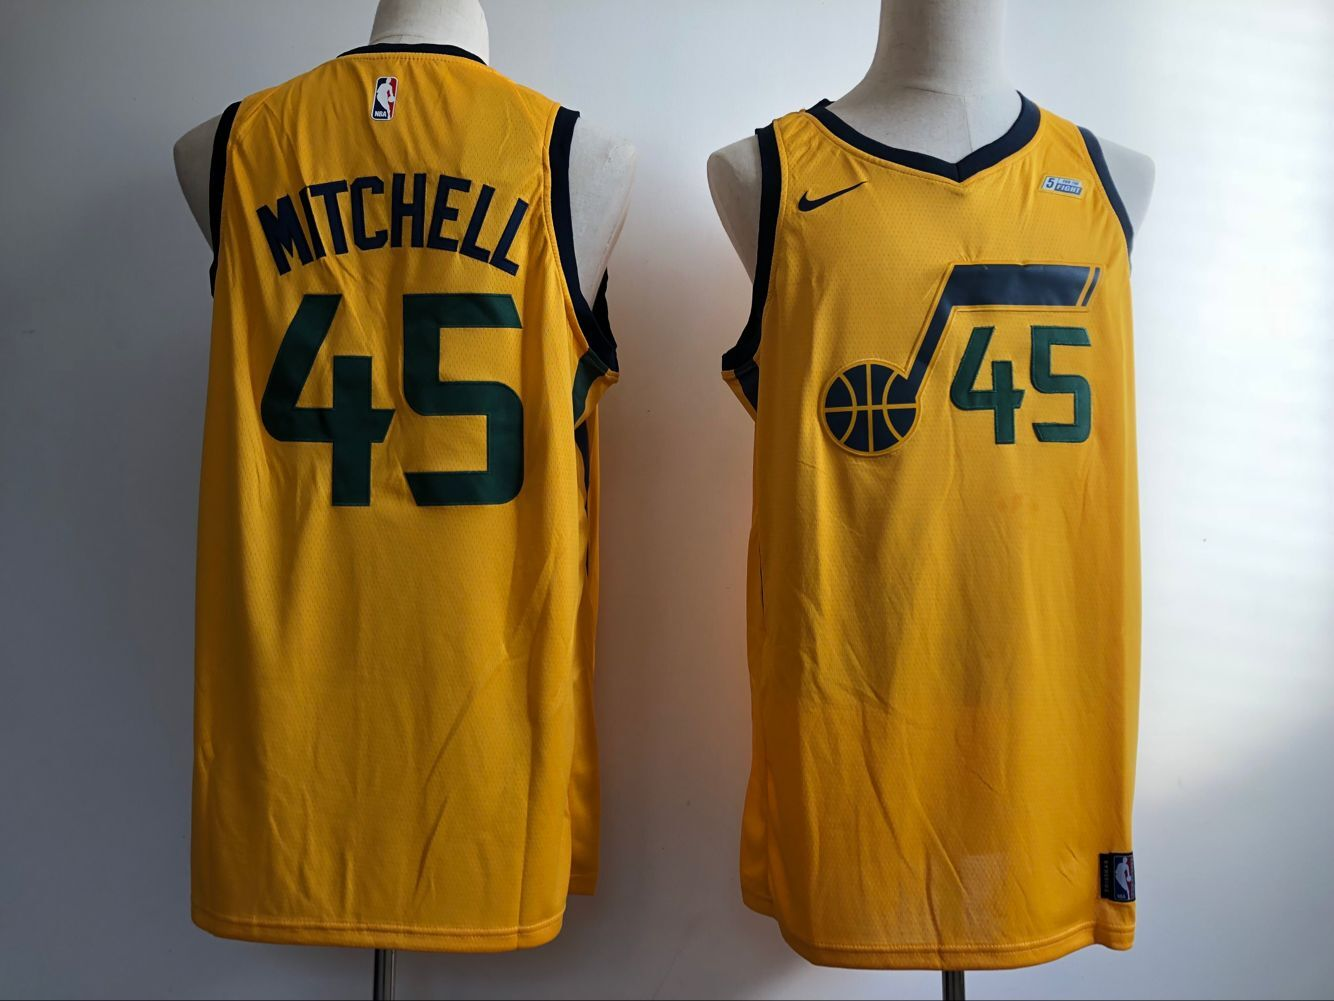 2018 Men Utah Jazz 45 Mitchell yellow Nike NBA Jerseys